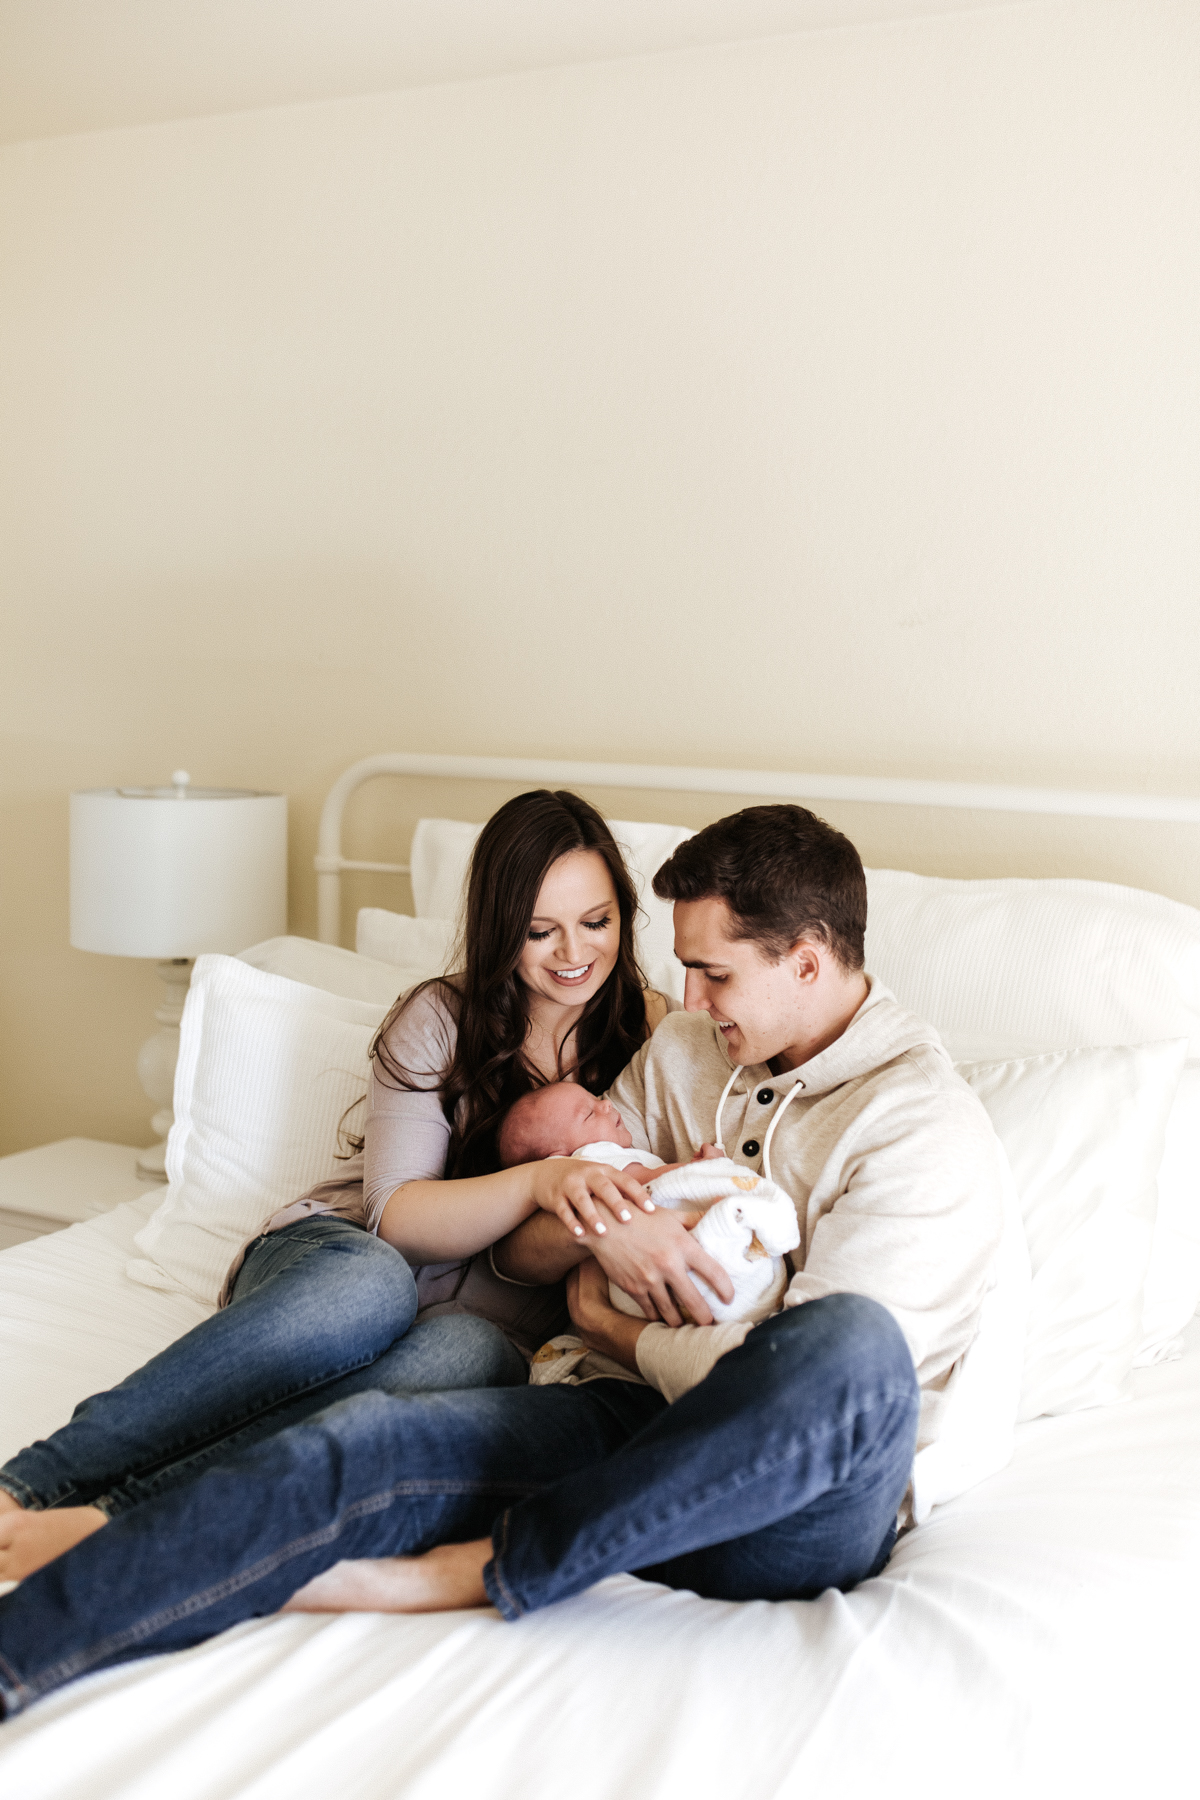 Megan Claire Photography | Arizona Newborn Photographer. Phoenix In Home Newborn portrait session @meganclairephoto